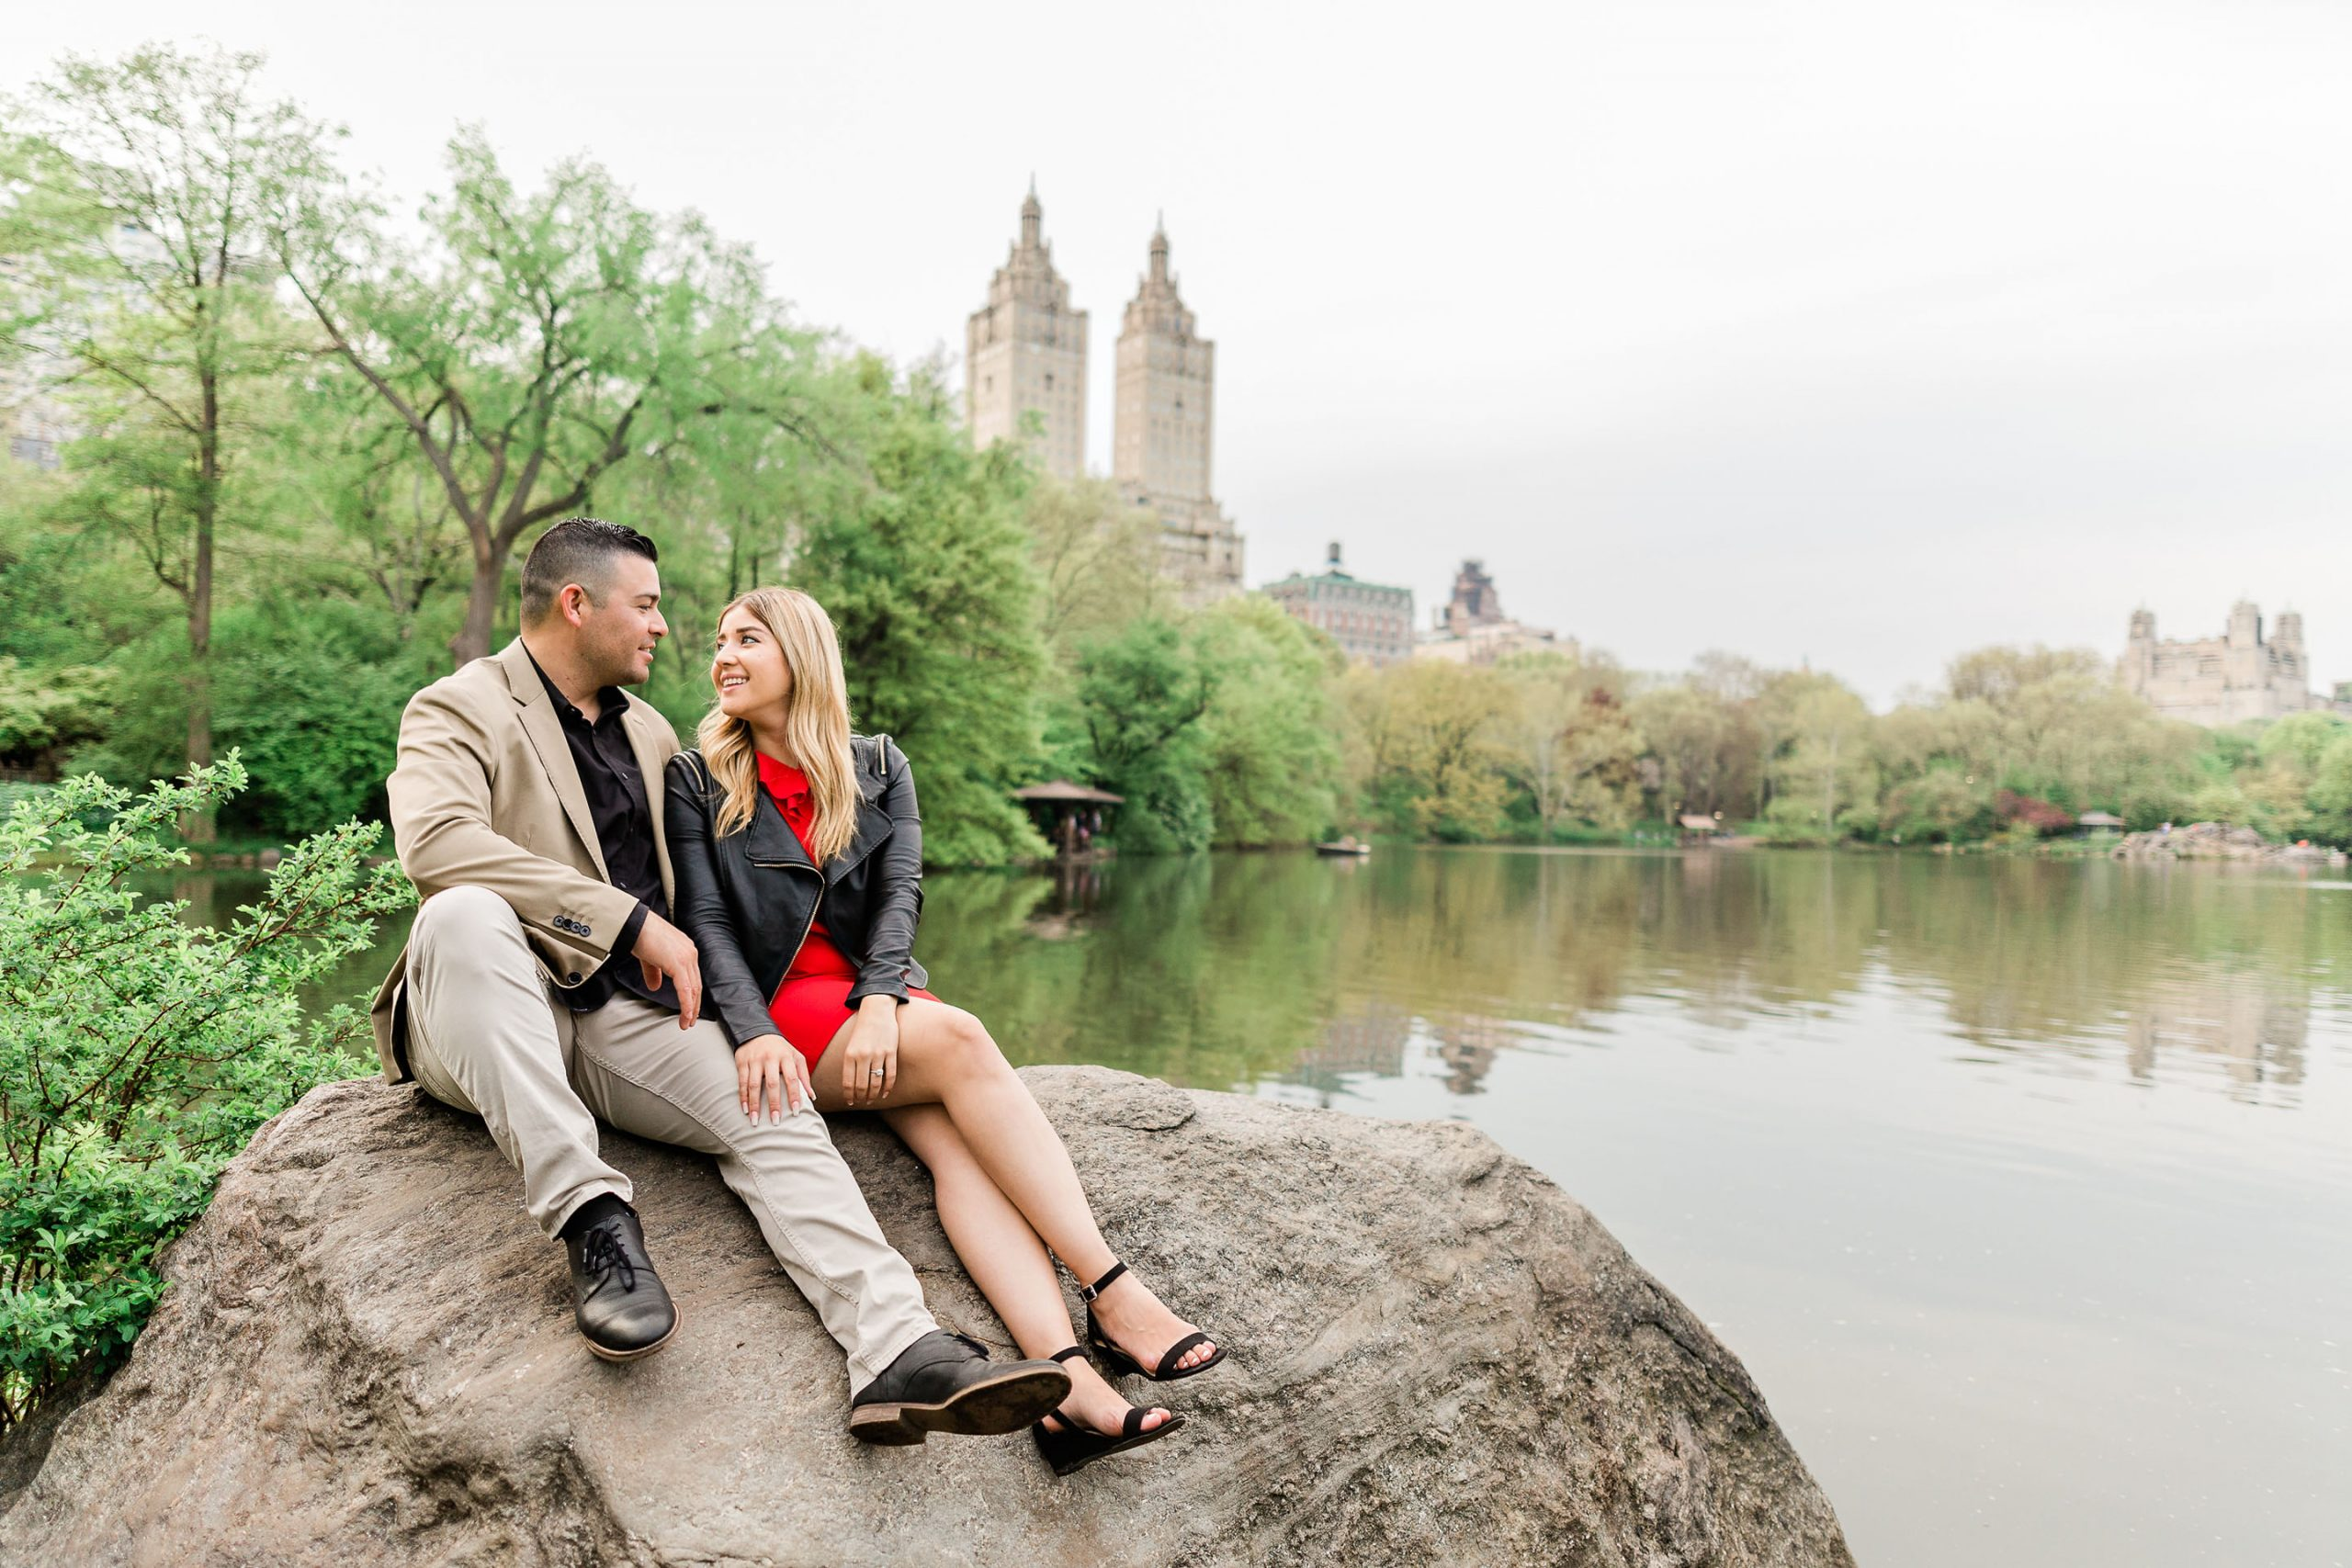 belvedere castle new york city central park engagement session